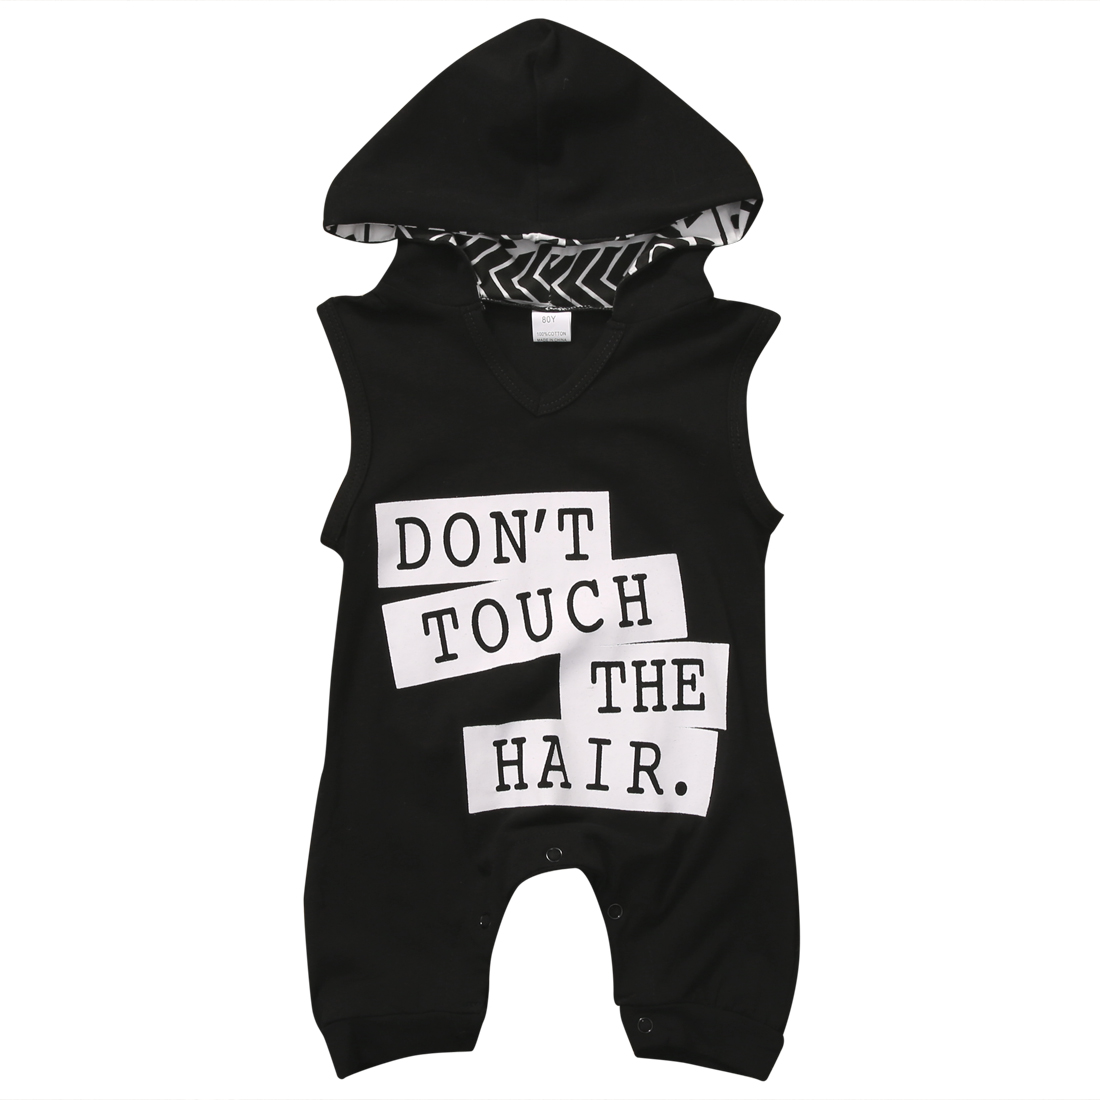 Cotton Newborn Infant Baby Boys Girls Sleeveless Harem Hooded Rompers Black Dont Touch Letters Romper Jumpsuit Clothes Outfits new arrival boy costumes rompers cotton newborn infant baby boys romper jumpsuit sunsuit clothes outfits